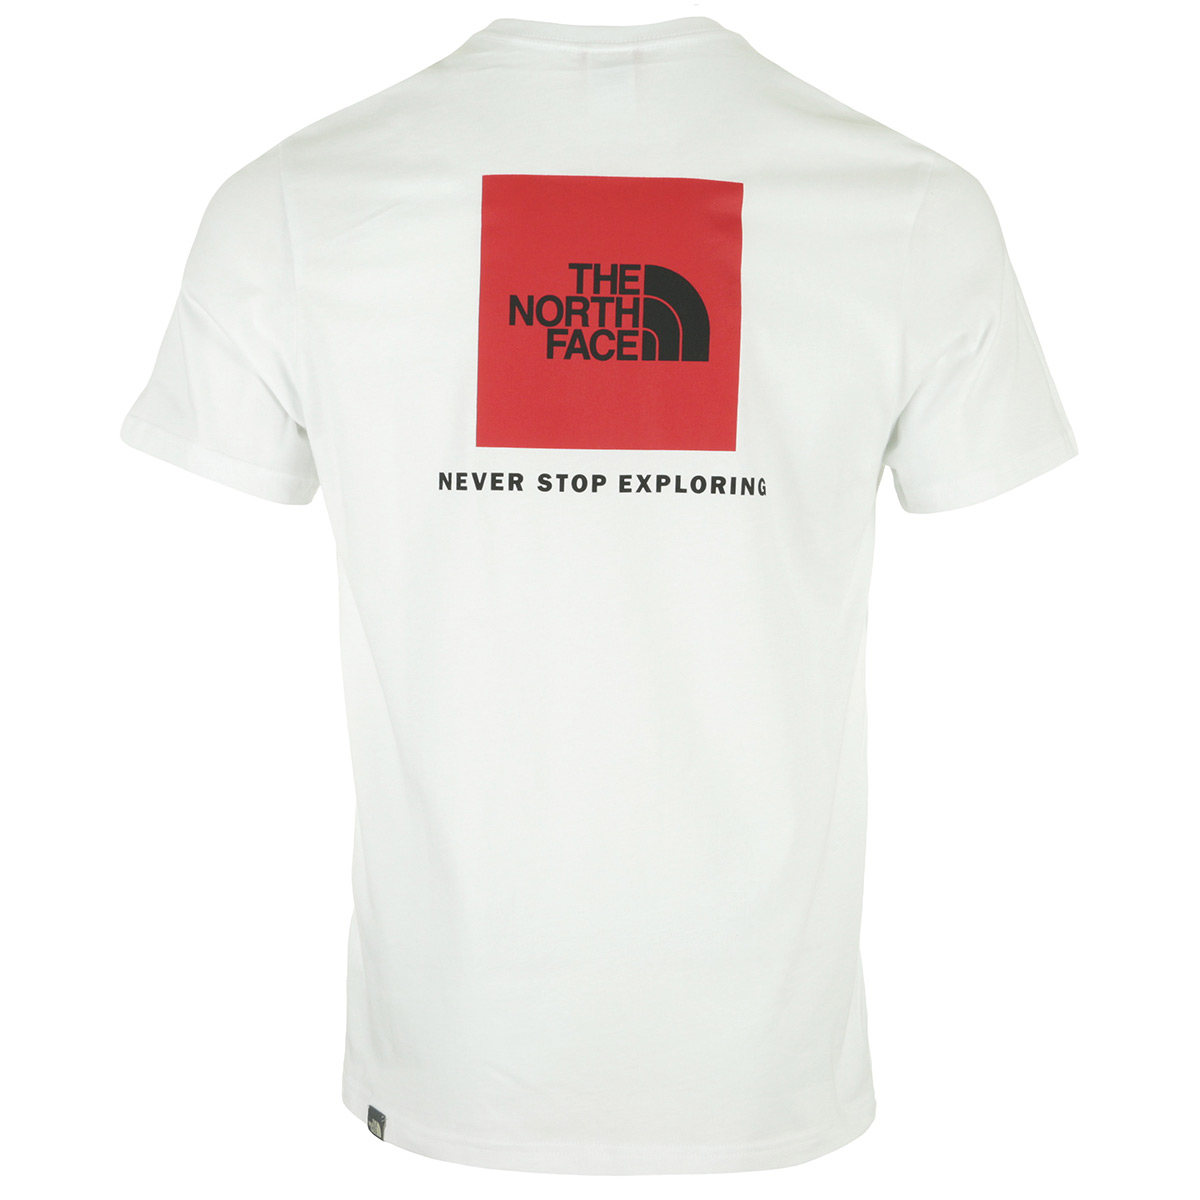 The North Face S/S Red Box Tee White T92TX2FN4, T-Shirts